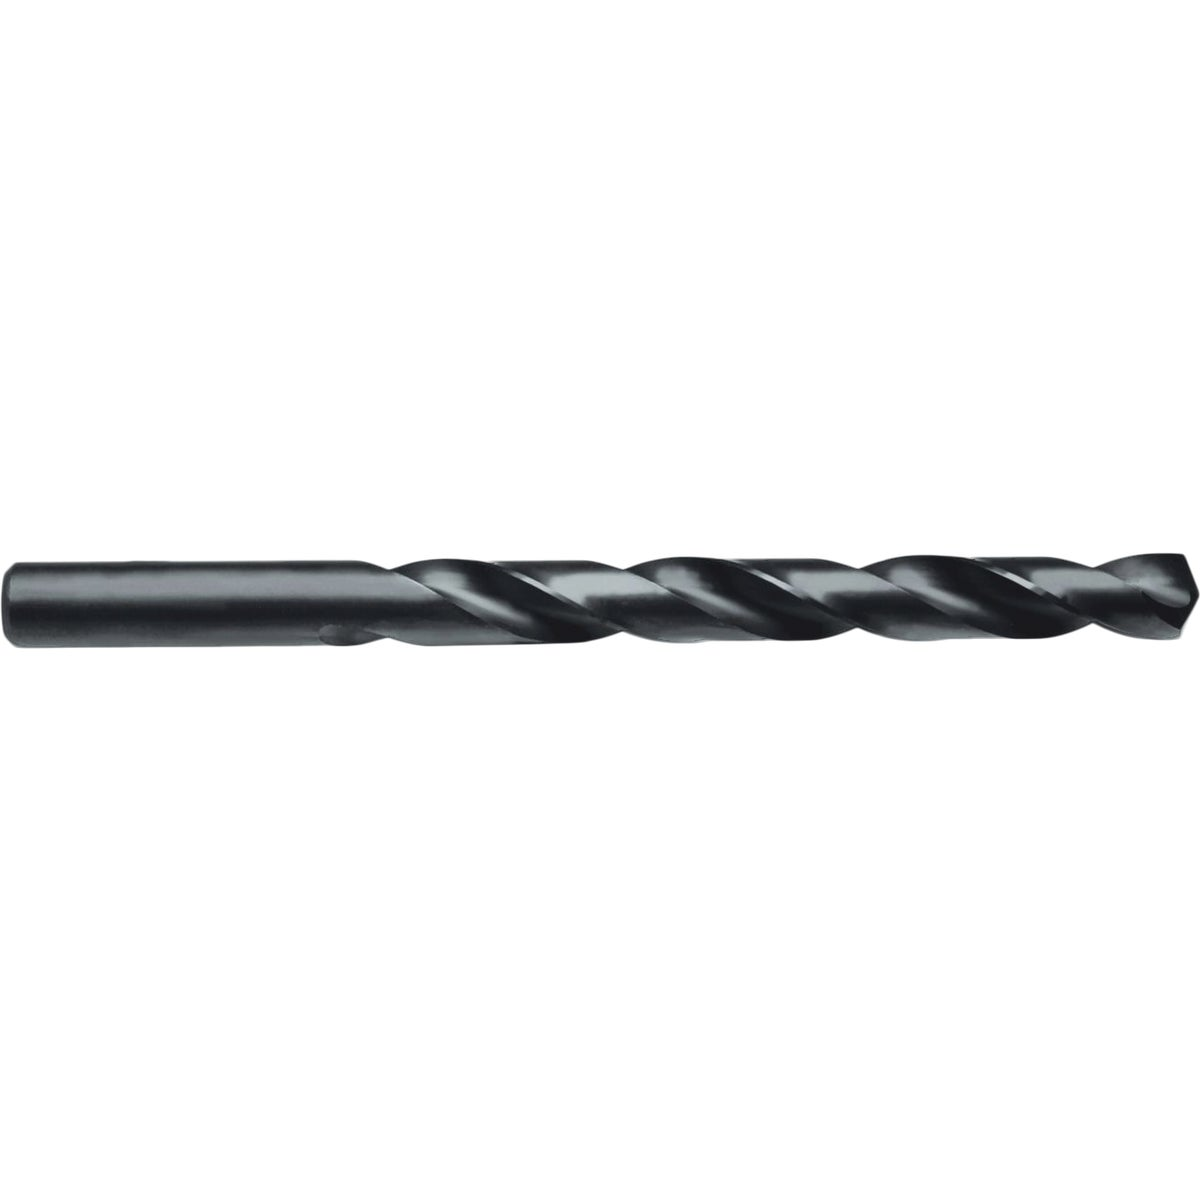 "5/32"" BLACK OXIDE BIT - DW1110 by DeWalt"